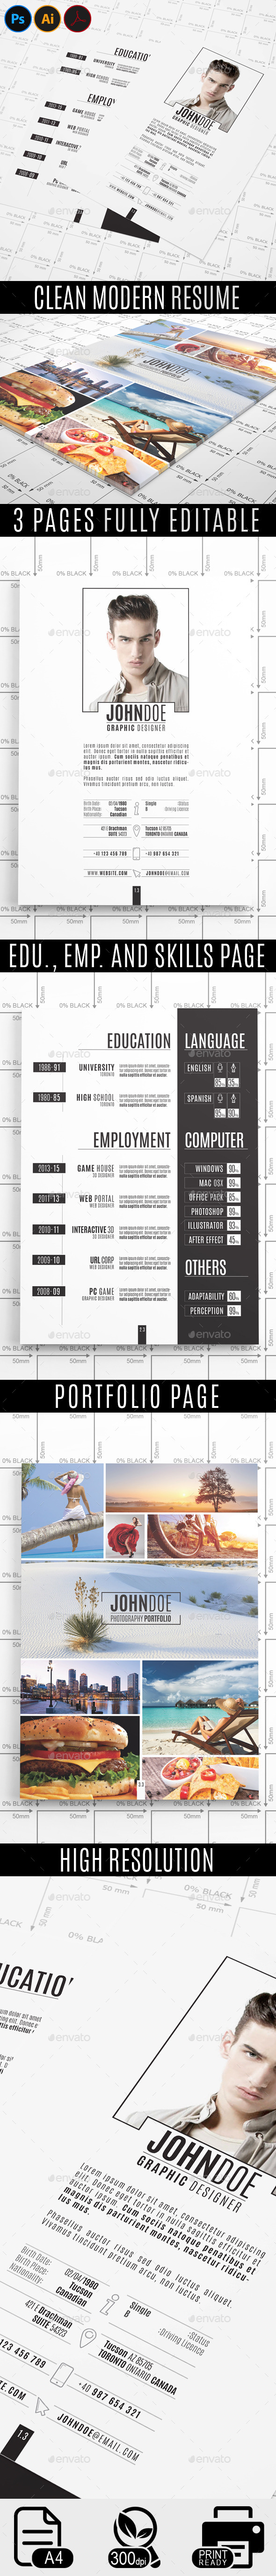 GraphicRiver Clean Modern Resume 11809922